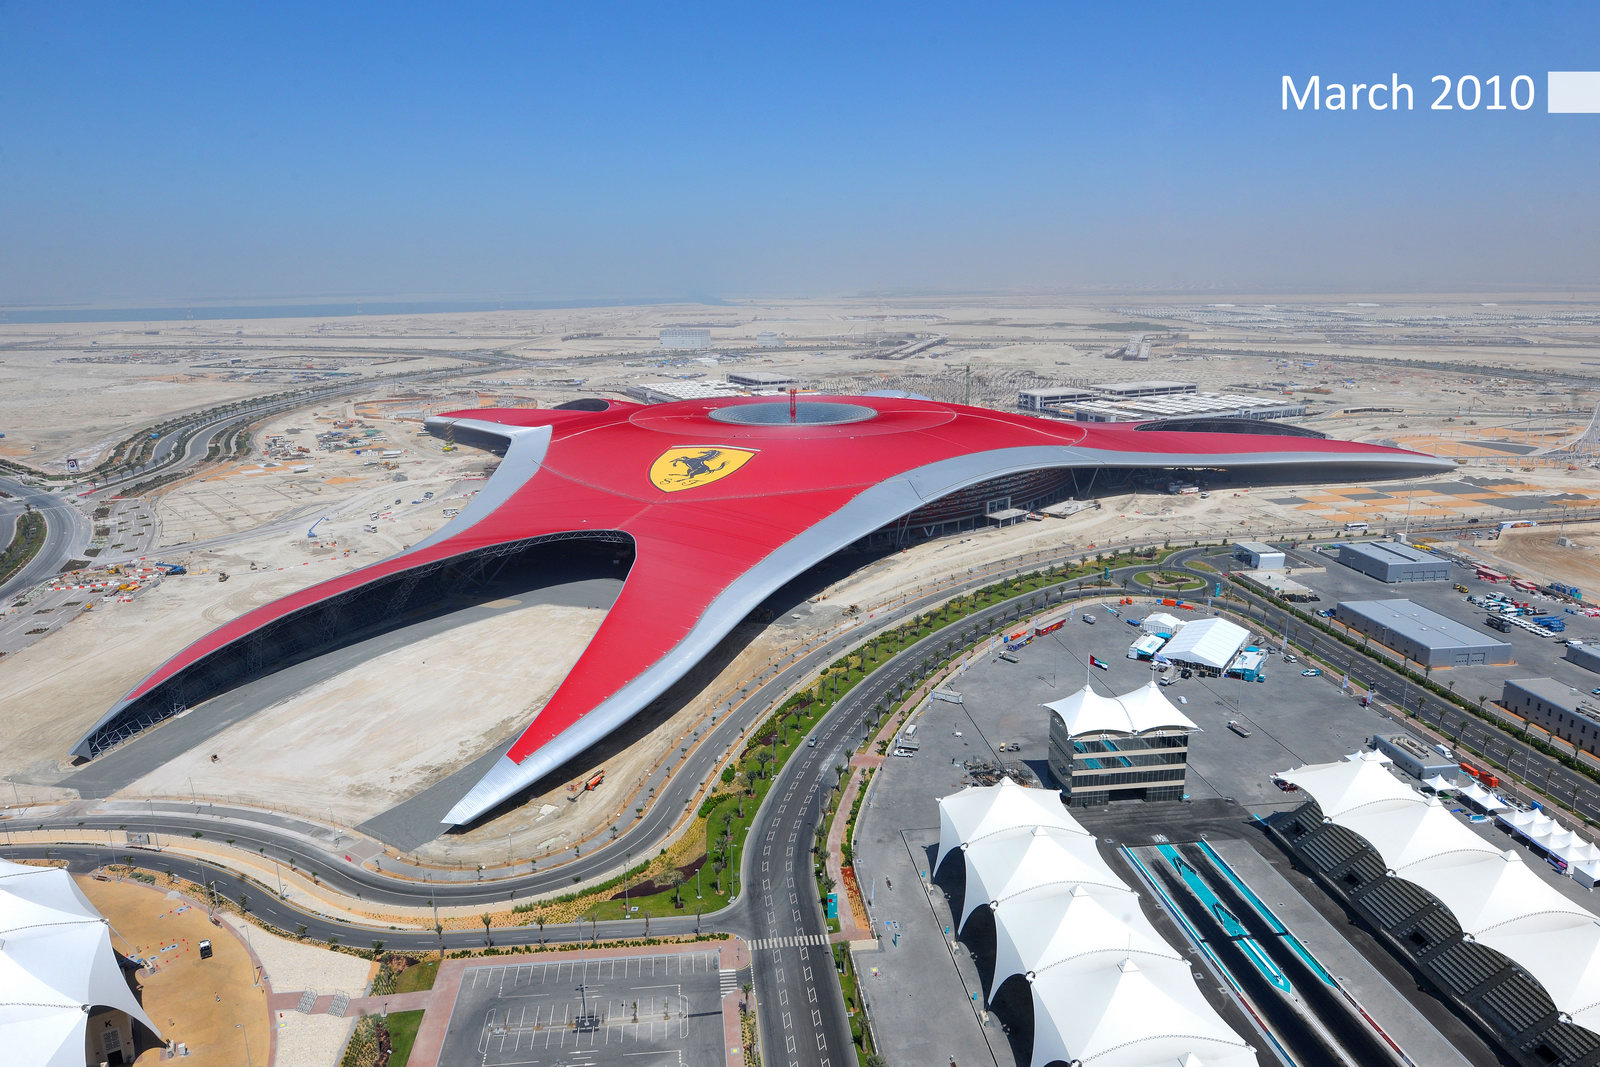 ferrari world abu dhabi opens in october formula rossa rollercoaster. Cars Review. Best American Auto & Cars Review